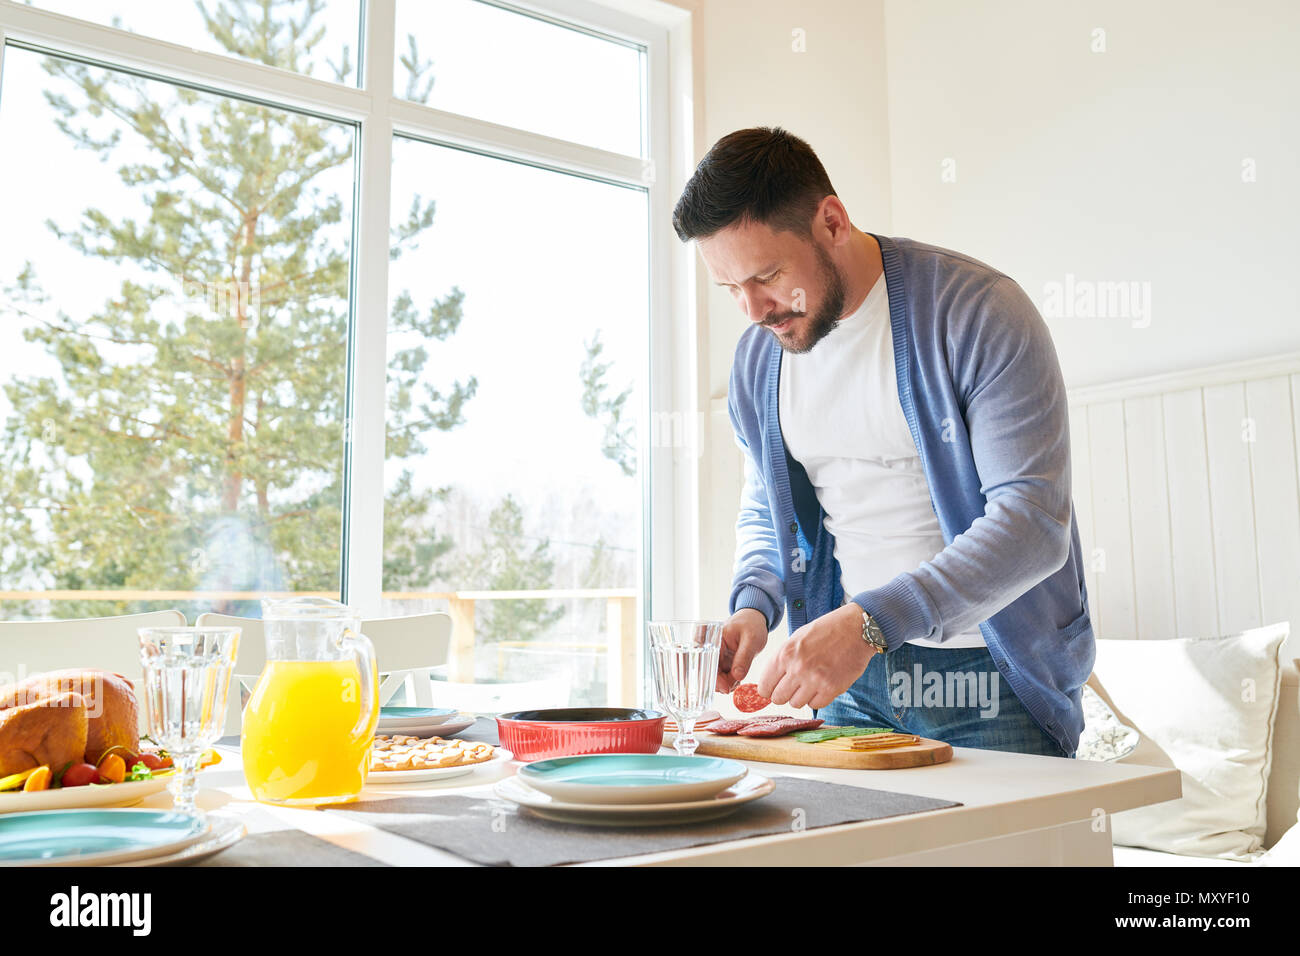 Side view portrait of mature bearded man setting dinner table  while waiting for guests  in sunlit dining room at home, copy space - Stock Image